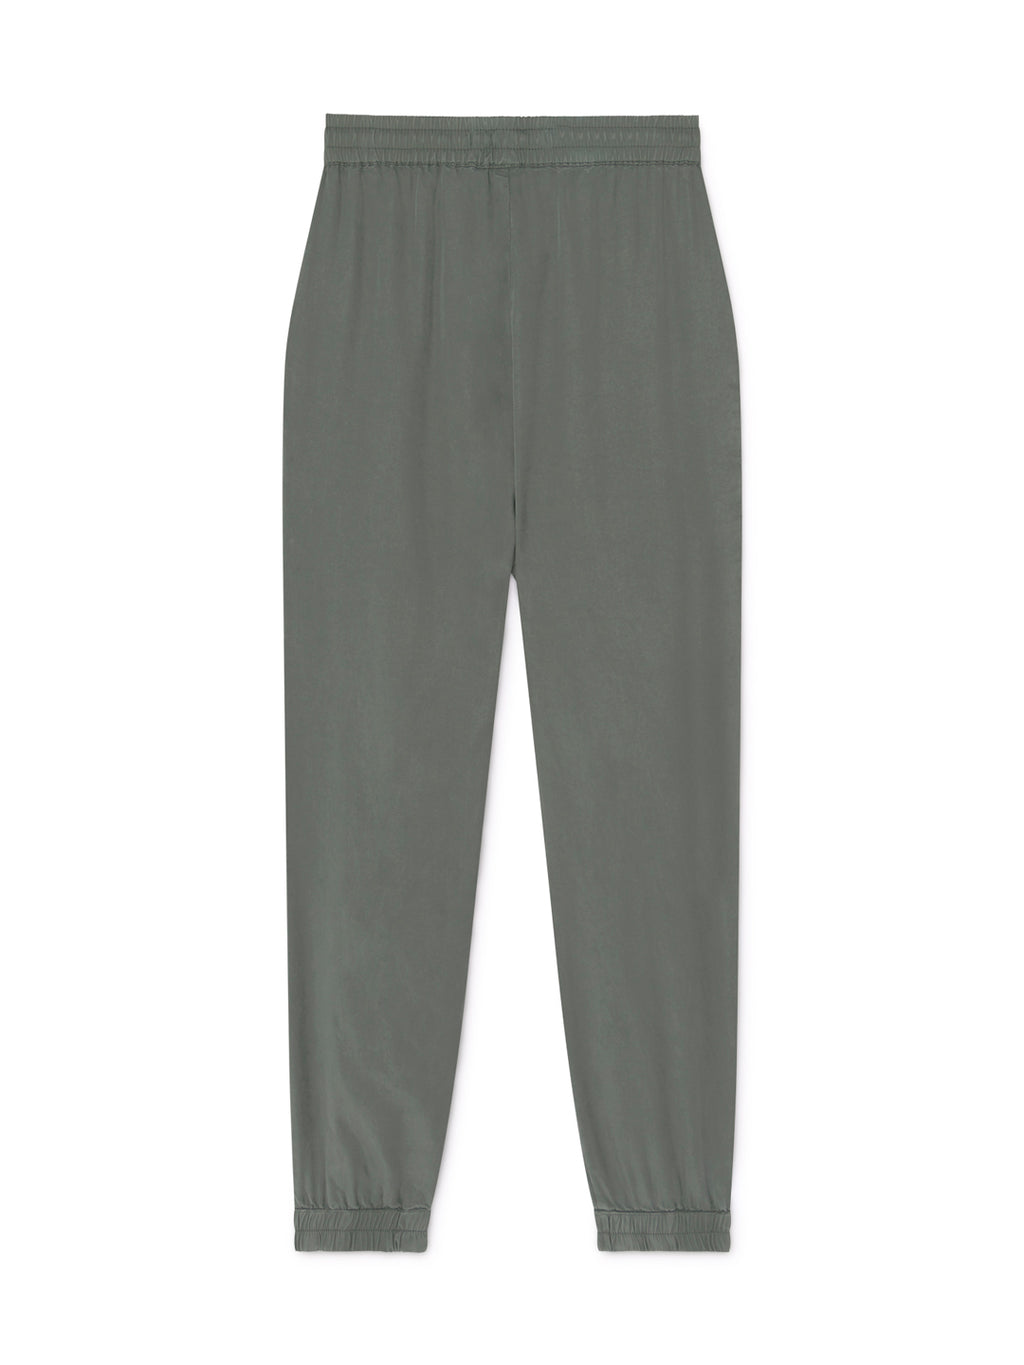 TWOTHIRDS Womens Pants: Kaafu - Washed Green back